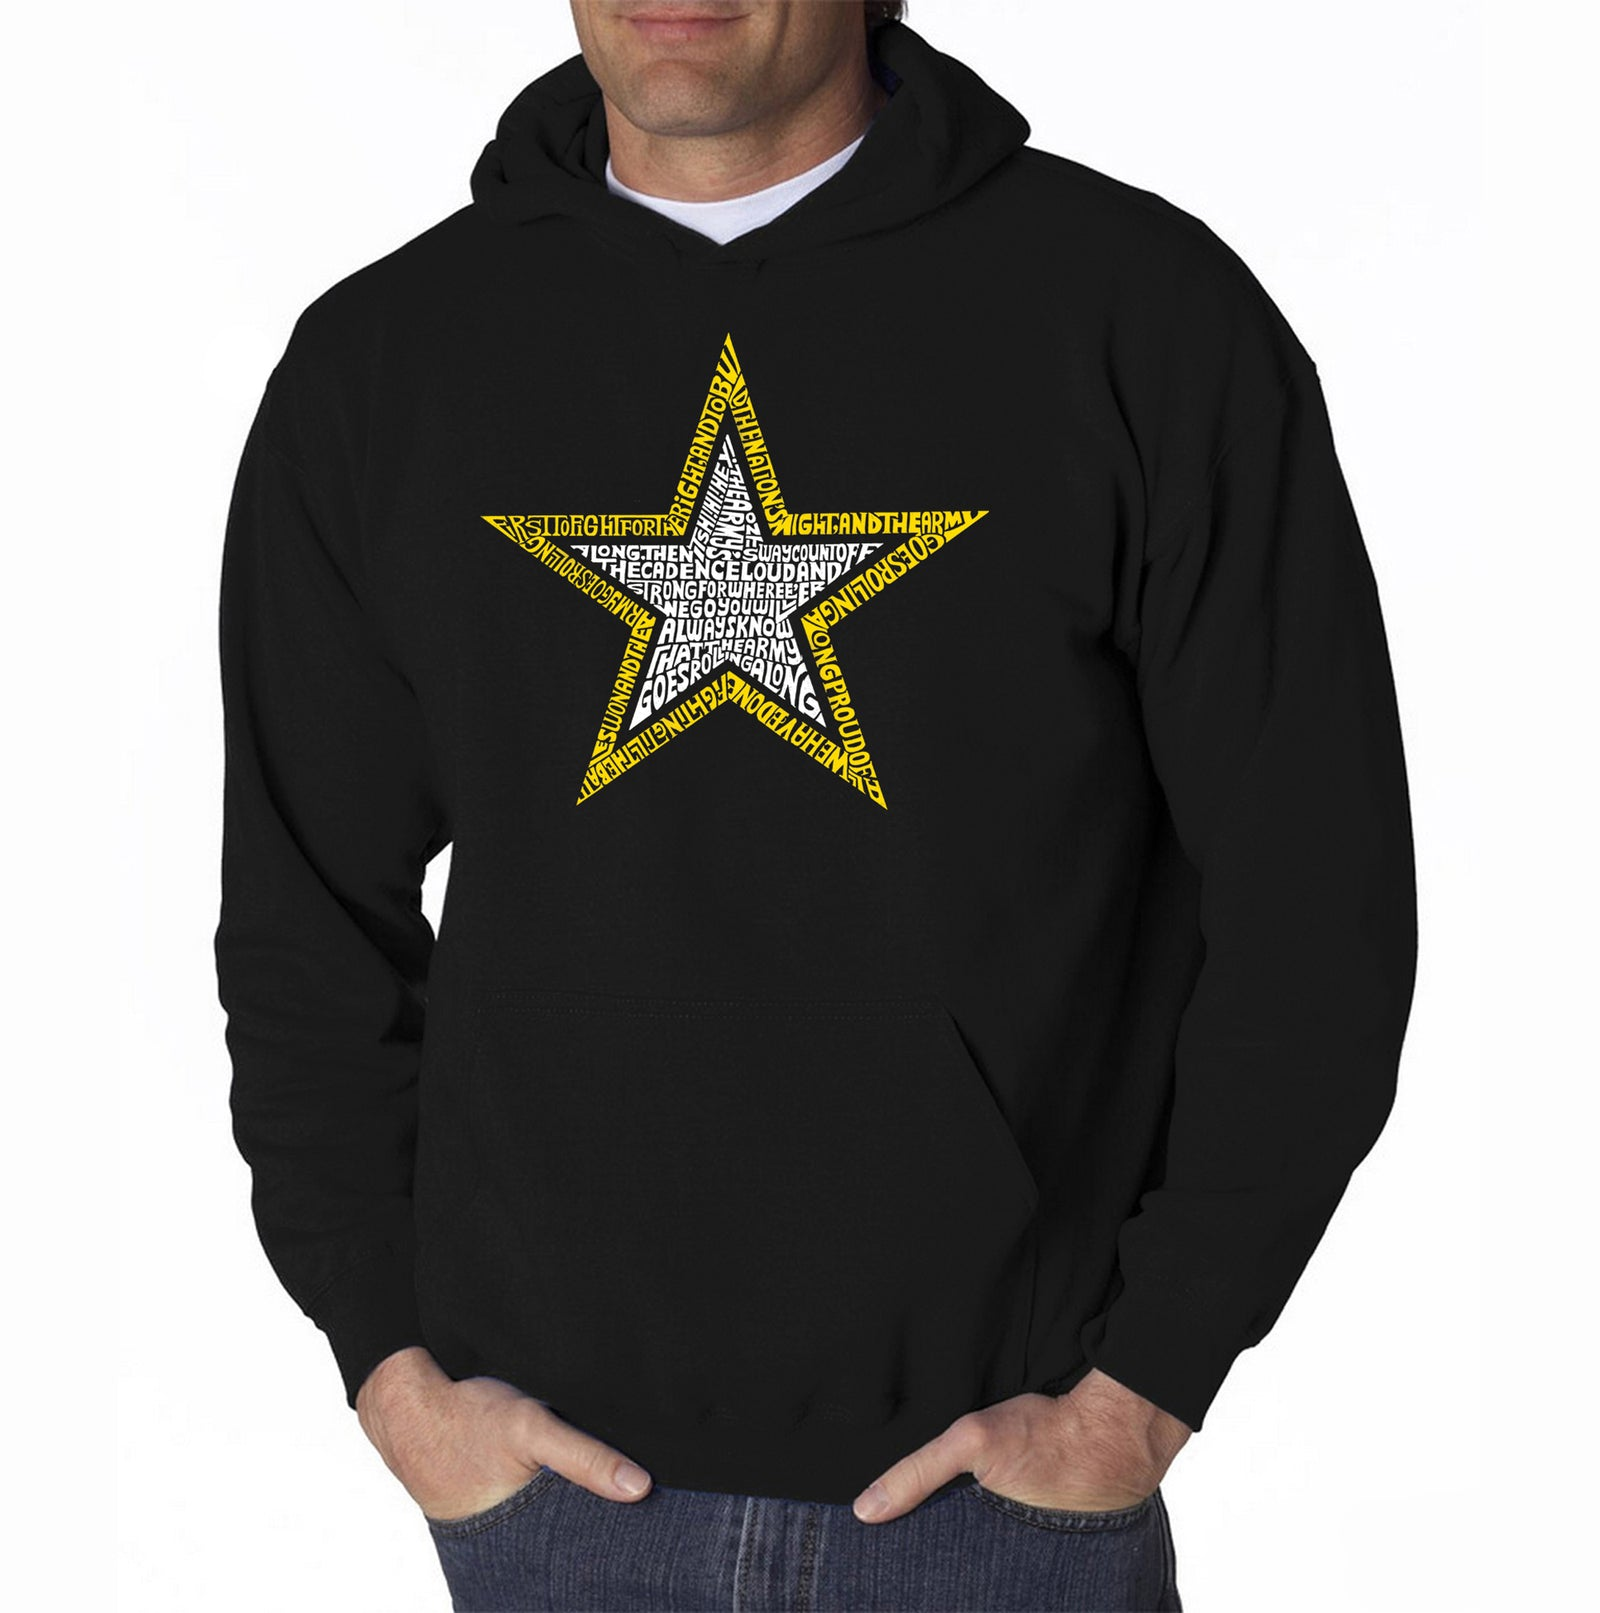 Men's Hooded Sweatshirt - LYRICS TO THE ARMY SONG